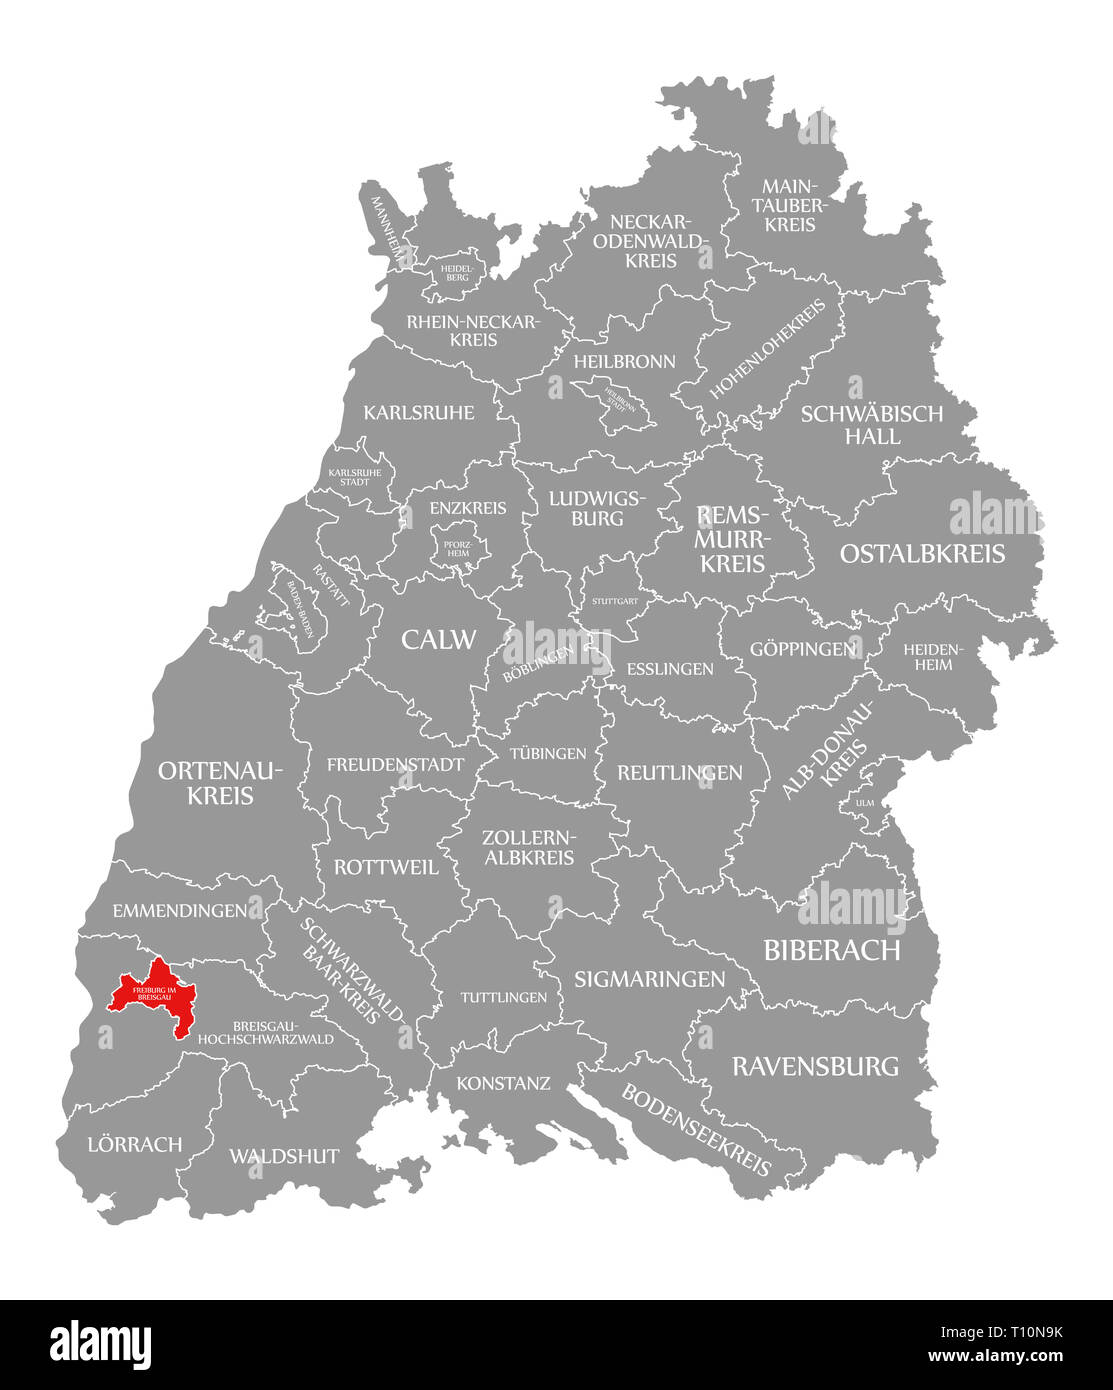 Freiburg Im Breisgau County Red Highlighted In Map Of Baden